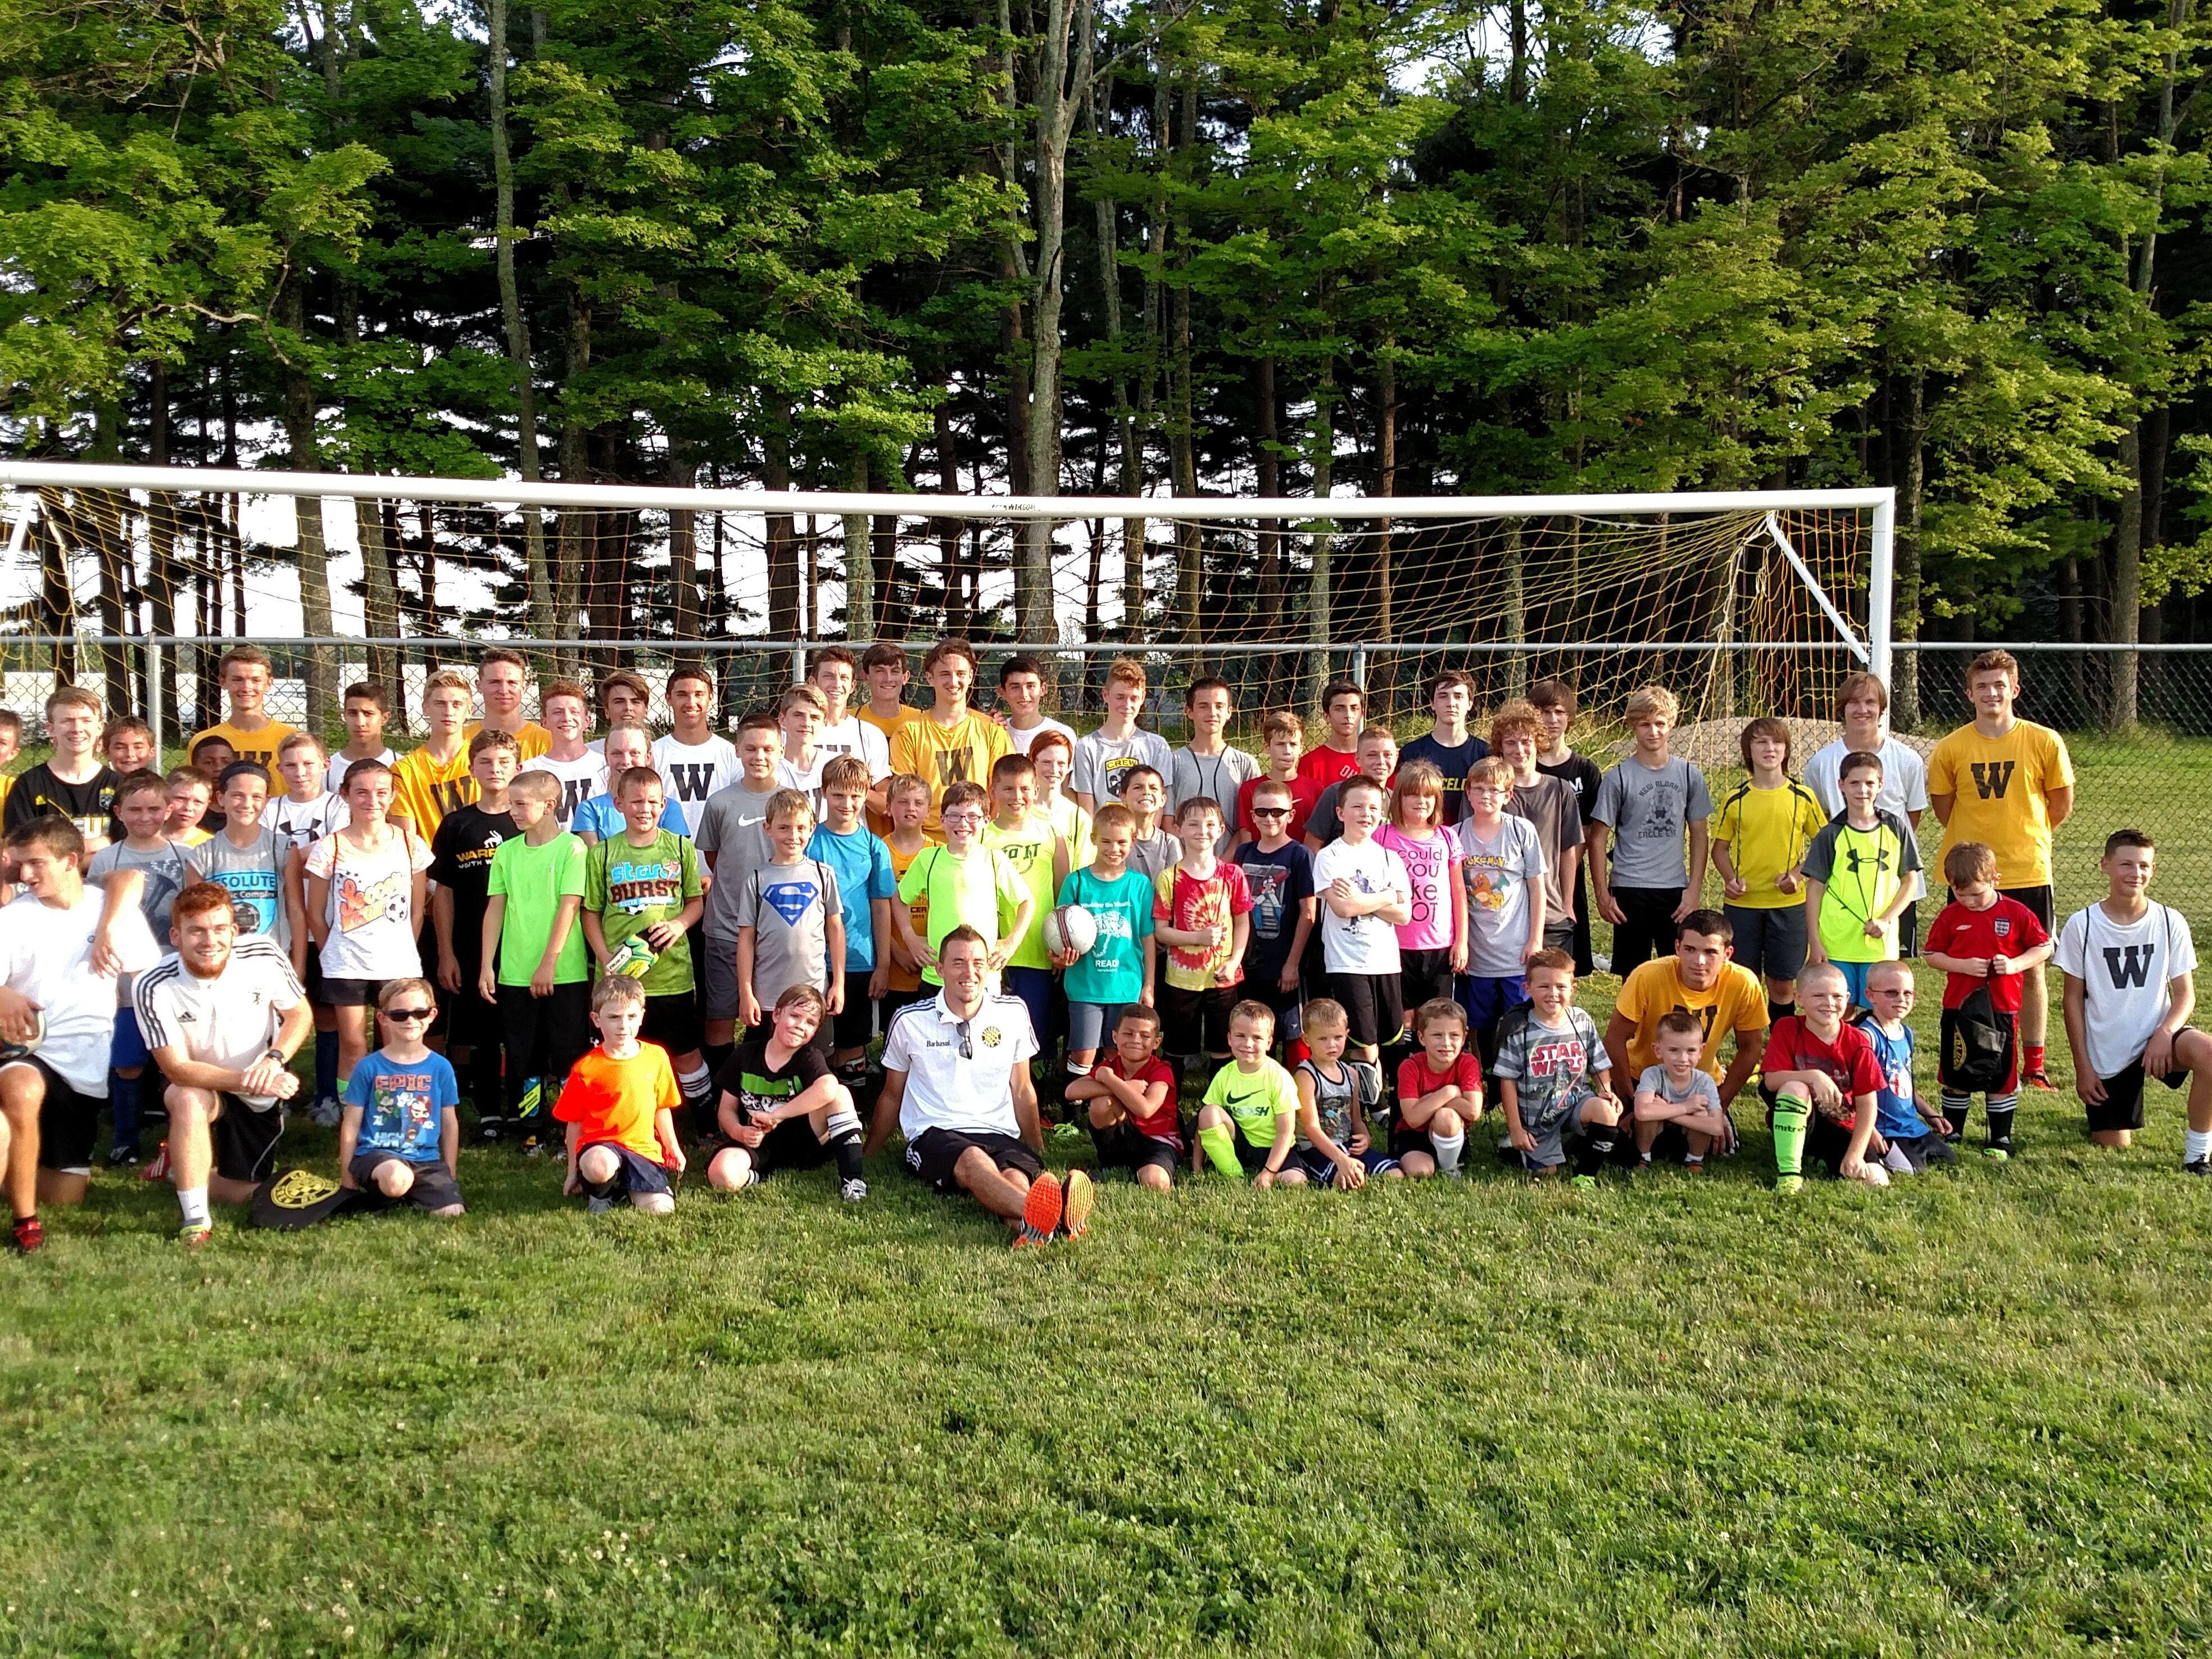 The Watkins Memorial boys soccer program hosted its annual youth camp June 22-24 to kick off its summer.